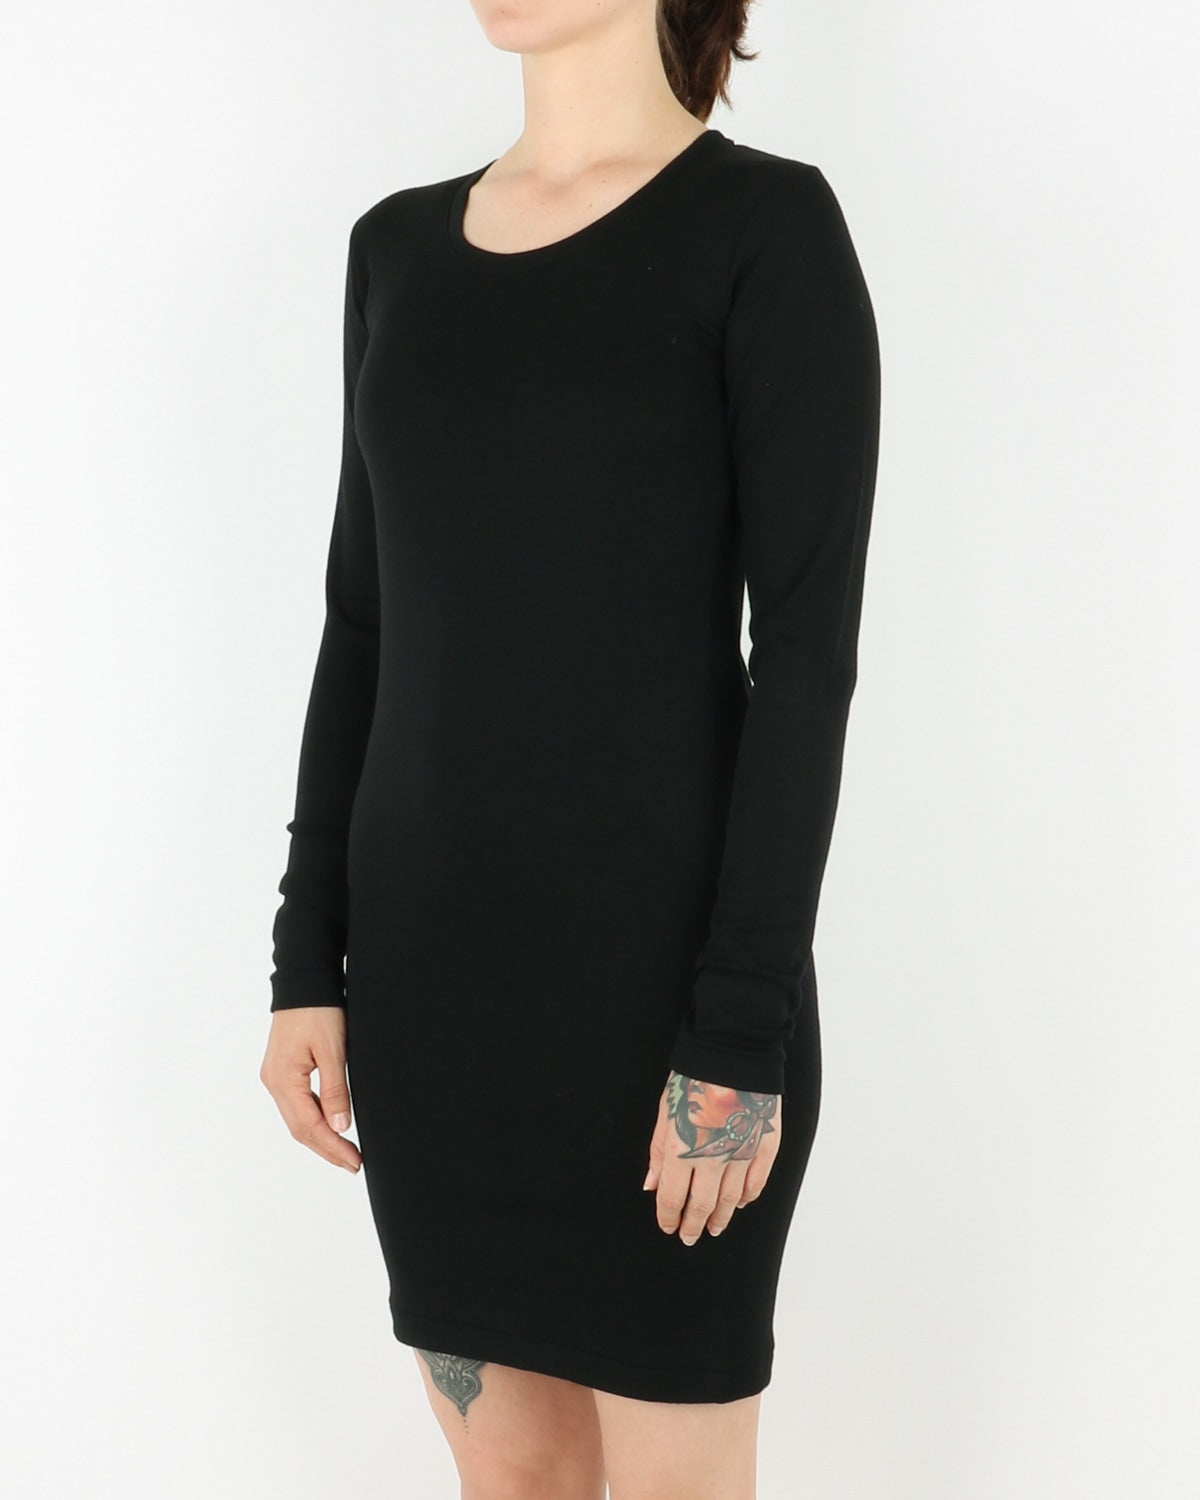 libertine libertine_trial dress_black_view_1_2